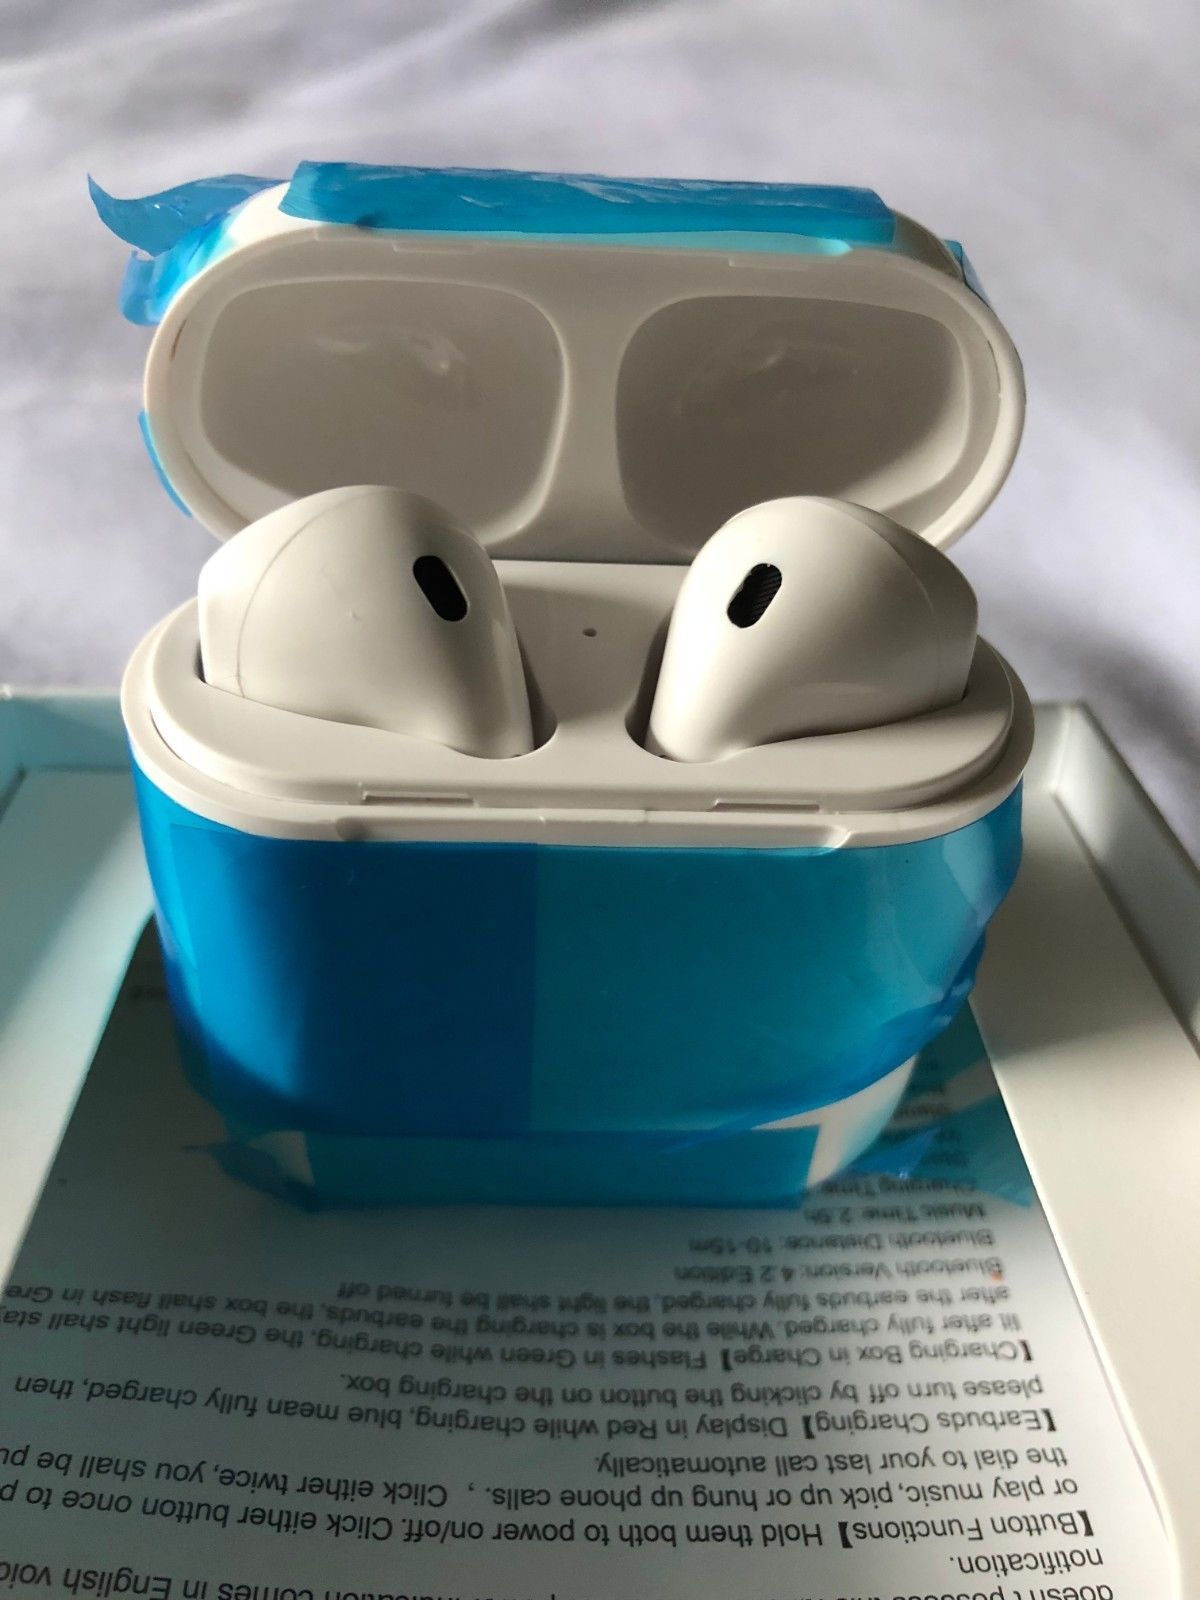 4589d32e5f4 China Wholesale Apple airpods Replica 1:1 clone version Apple airpods,it  has all the features of original one,We aim to show you accurate product ...